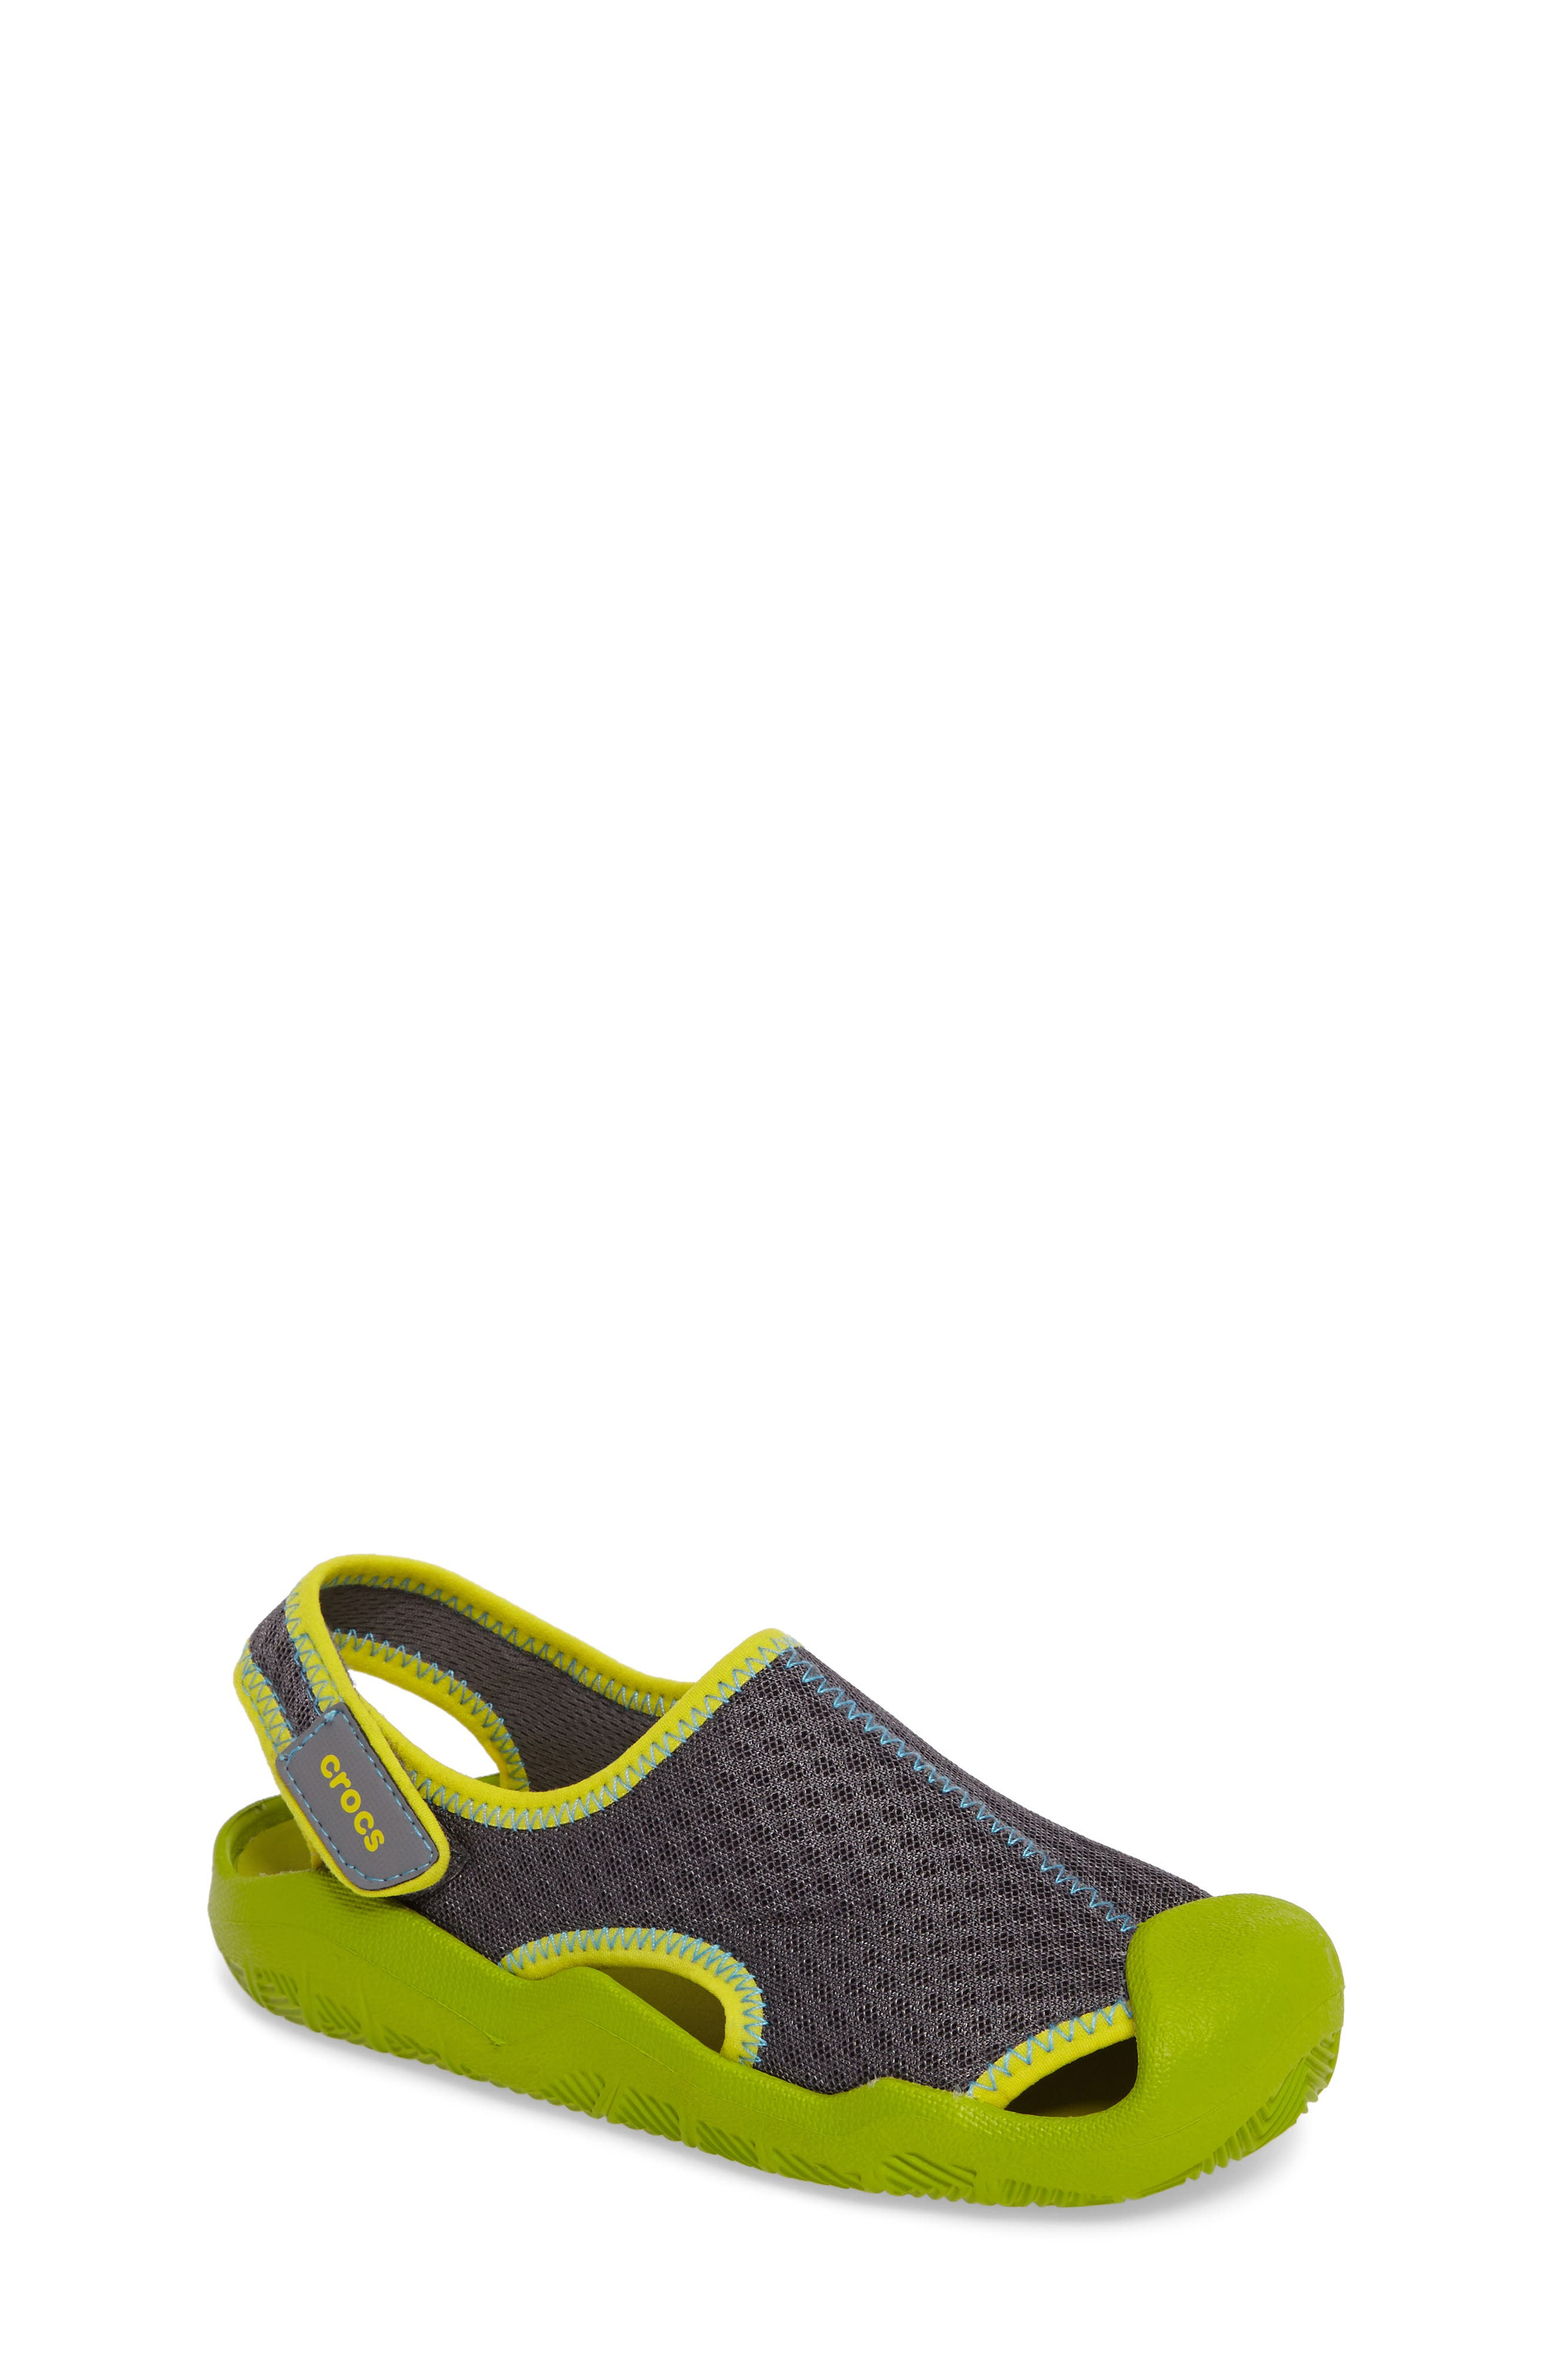 Swiftwater Sandal,                             Main thumbnail 2, color,